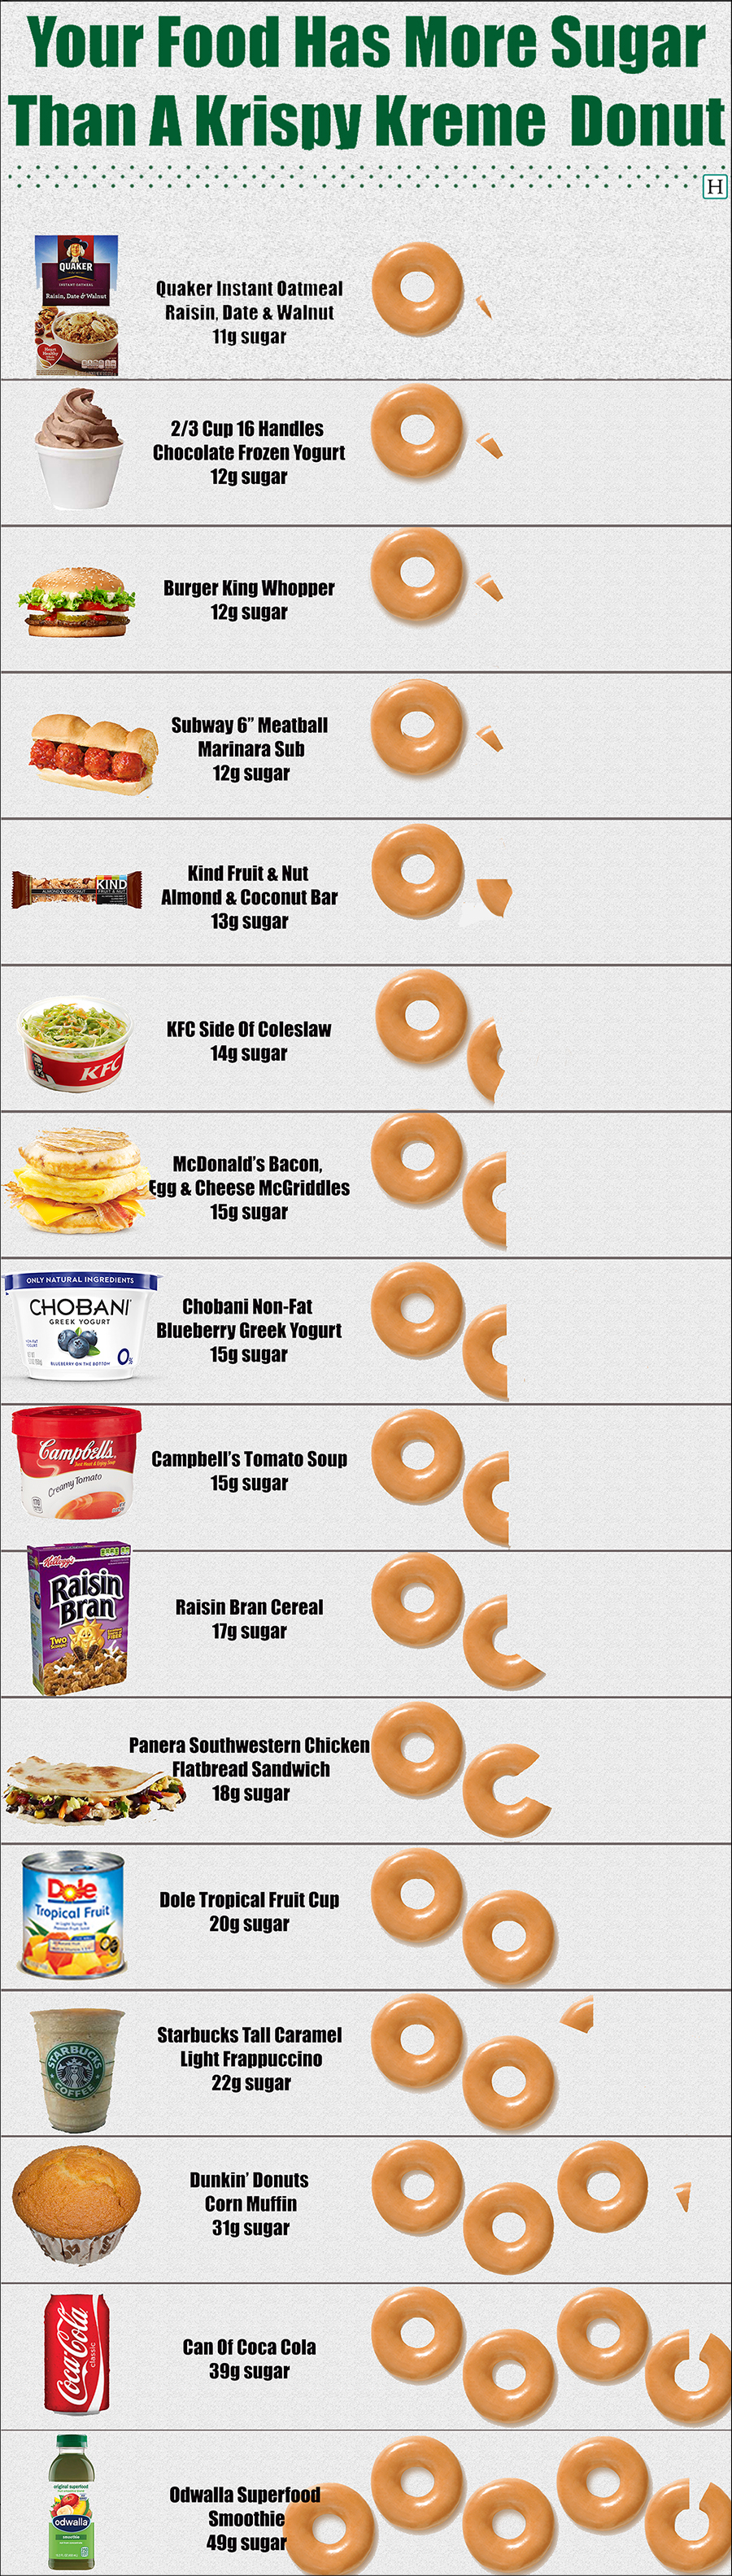 These Foods Have More Sugar Than A Krispy Kreme Donut